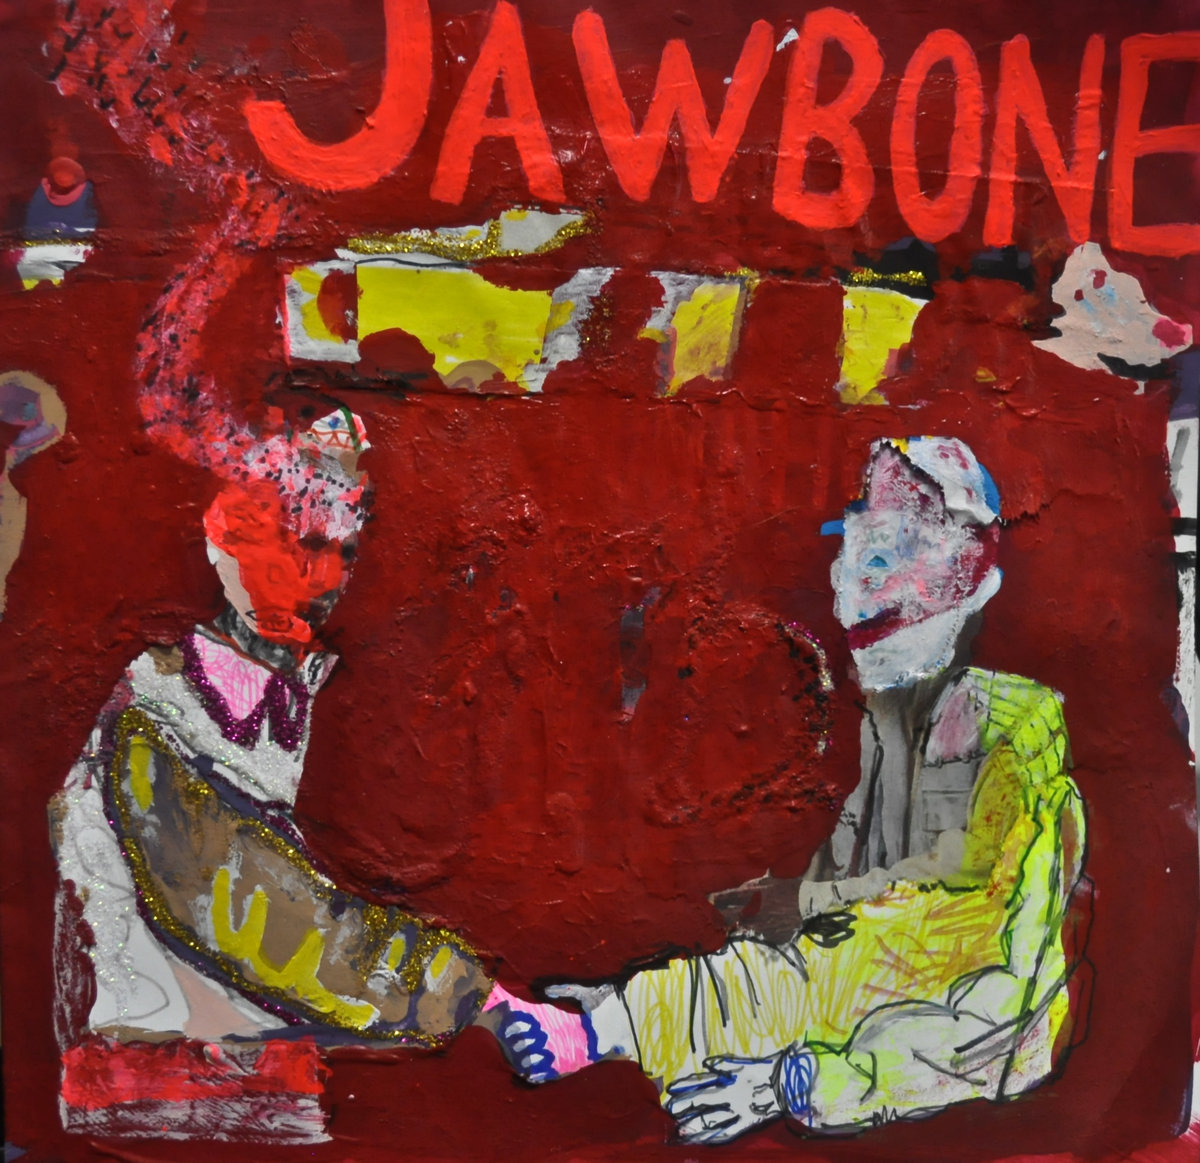 Jawbone Releases Follow Up Record, 2